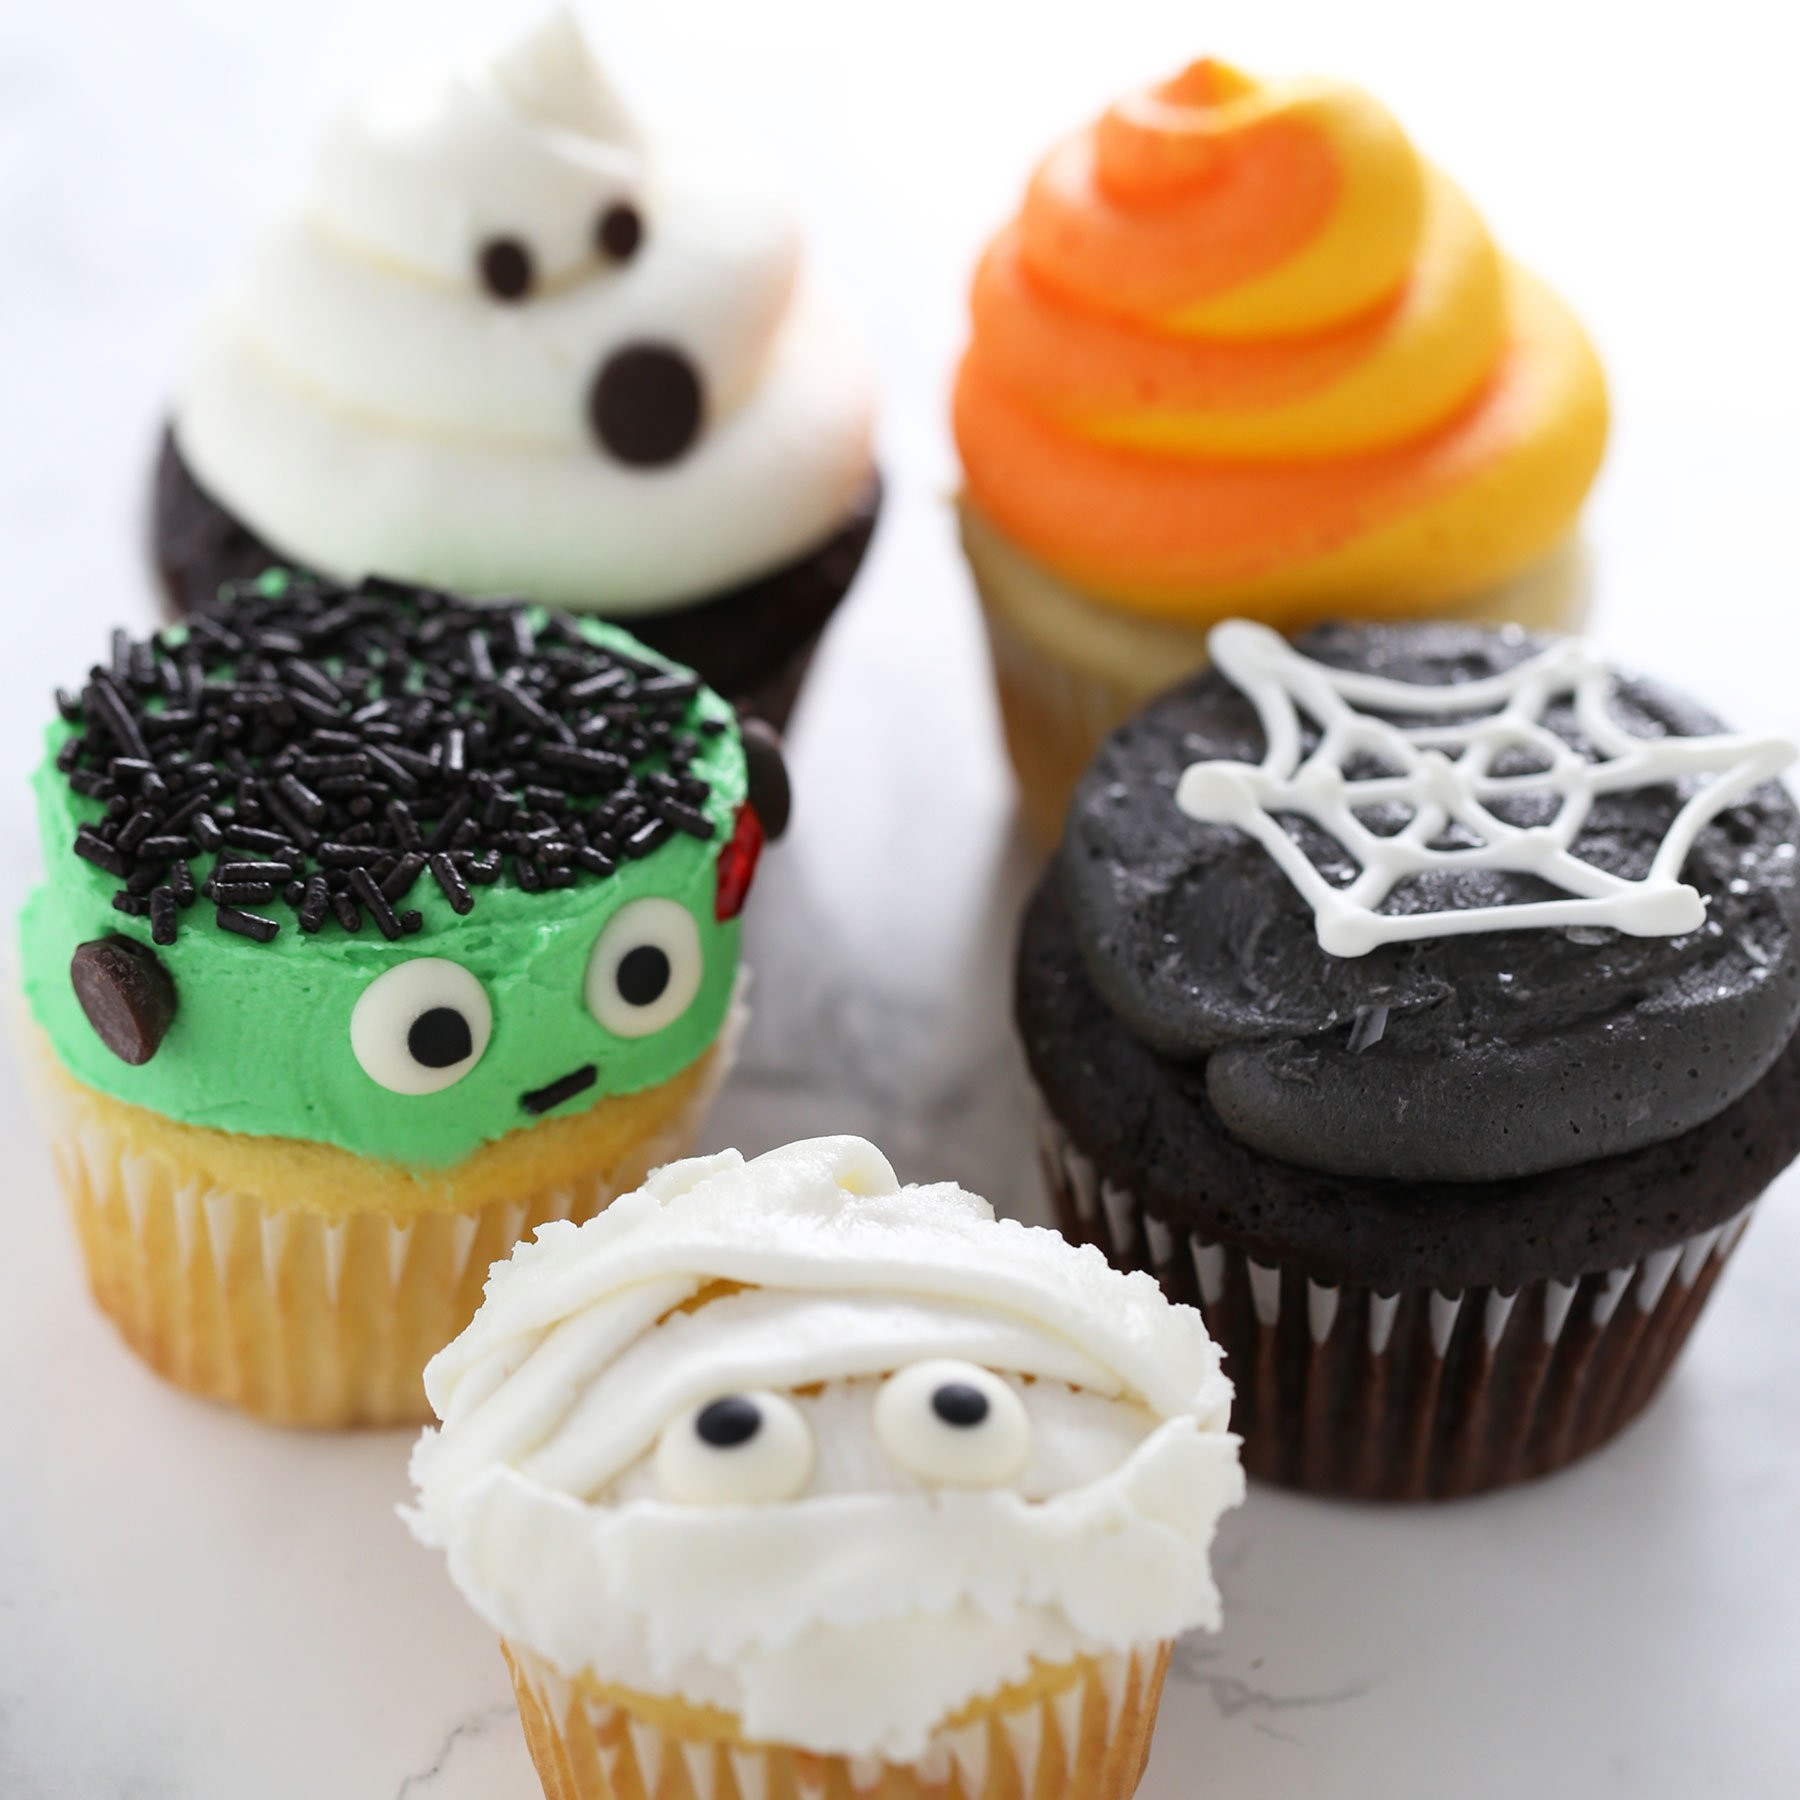 Halloween Cupcakes Decorations  How to Make Halloween Cupcakes Handle the Heat